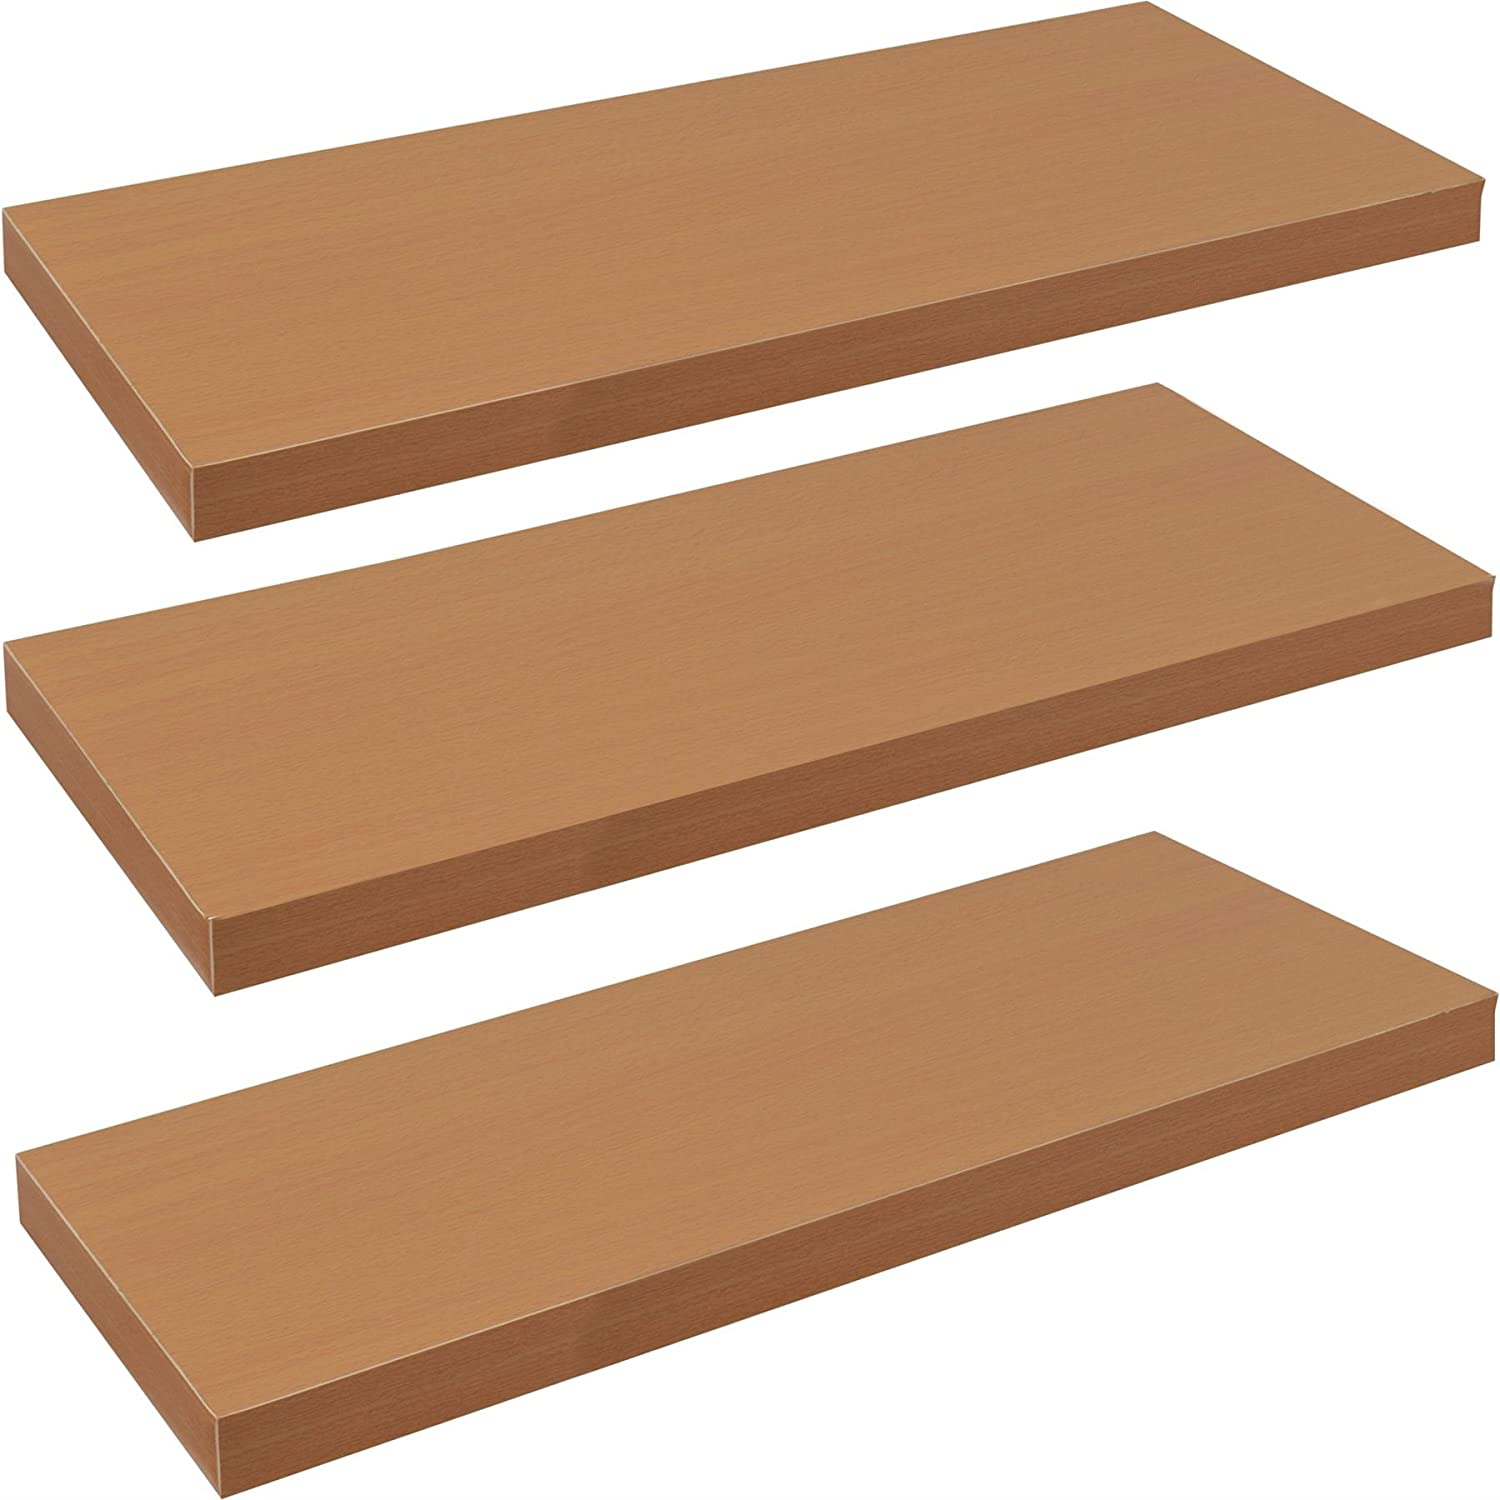 Harbour Housewares Pack of 3 Floating Wooden Wall Shelves 80cm - Natural Beech